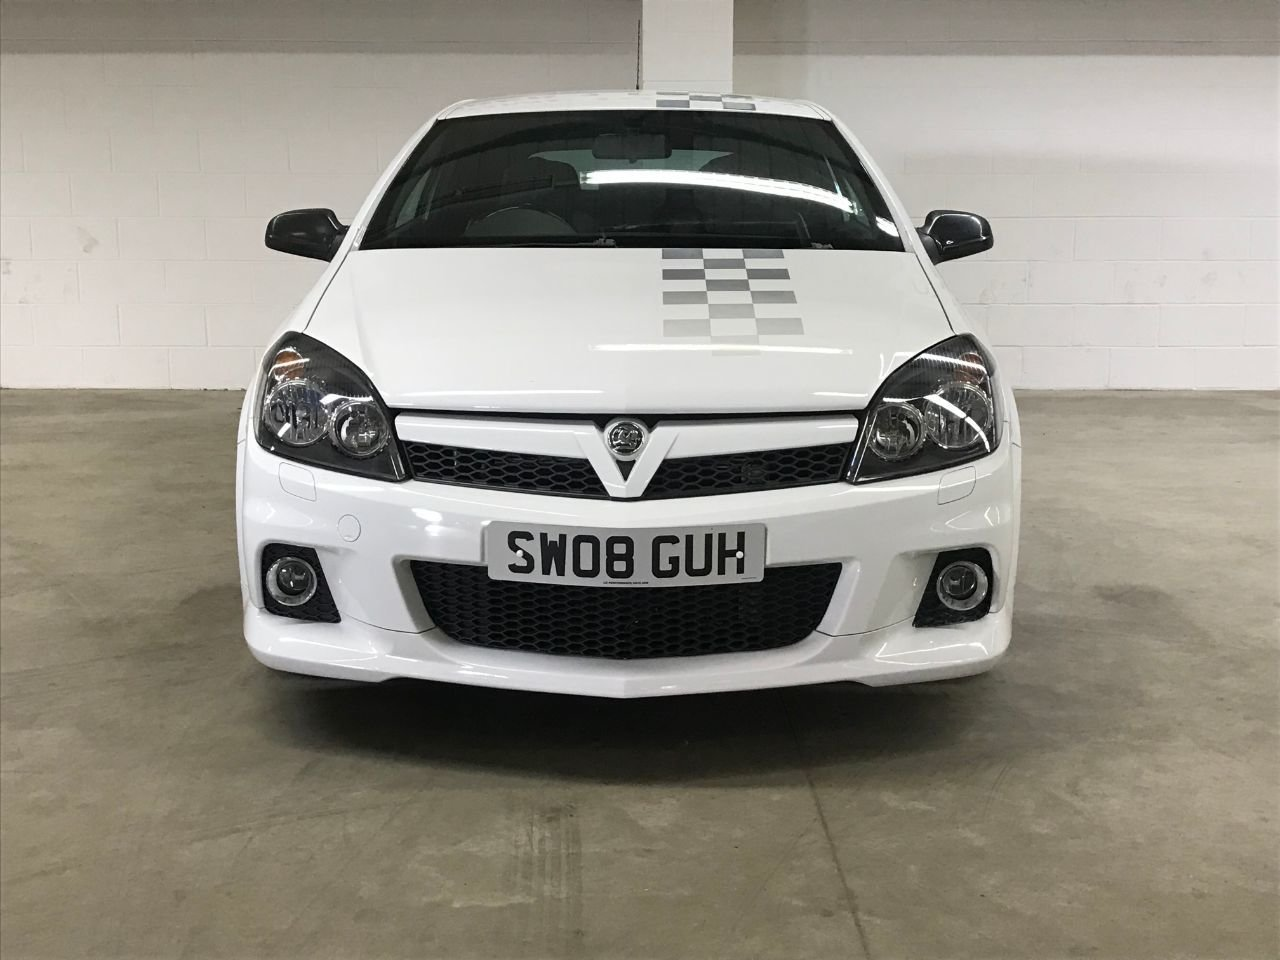 2008 VAUXHALL ASTRA VXR NURBURGRING For Sale (picture 2 of 5)